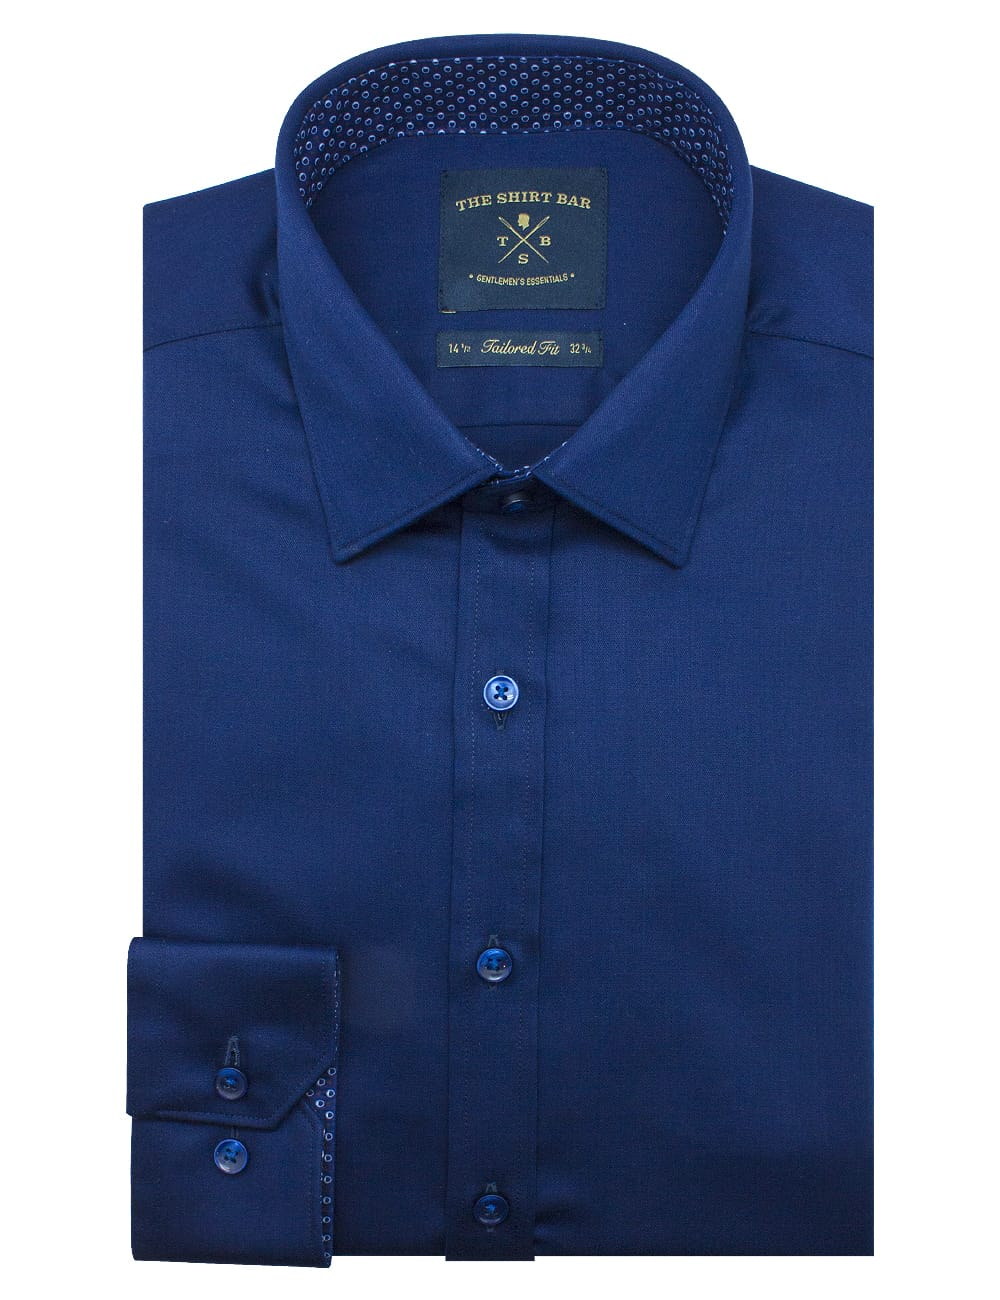 Tailored Fit Solid Navy Twill Eco-ol Bamboo Blend Wrinkle Free Long Sleeve Single Cuff Shirt TF2A6.17